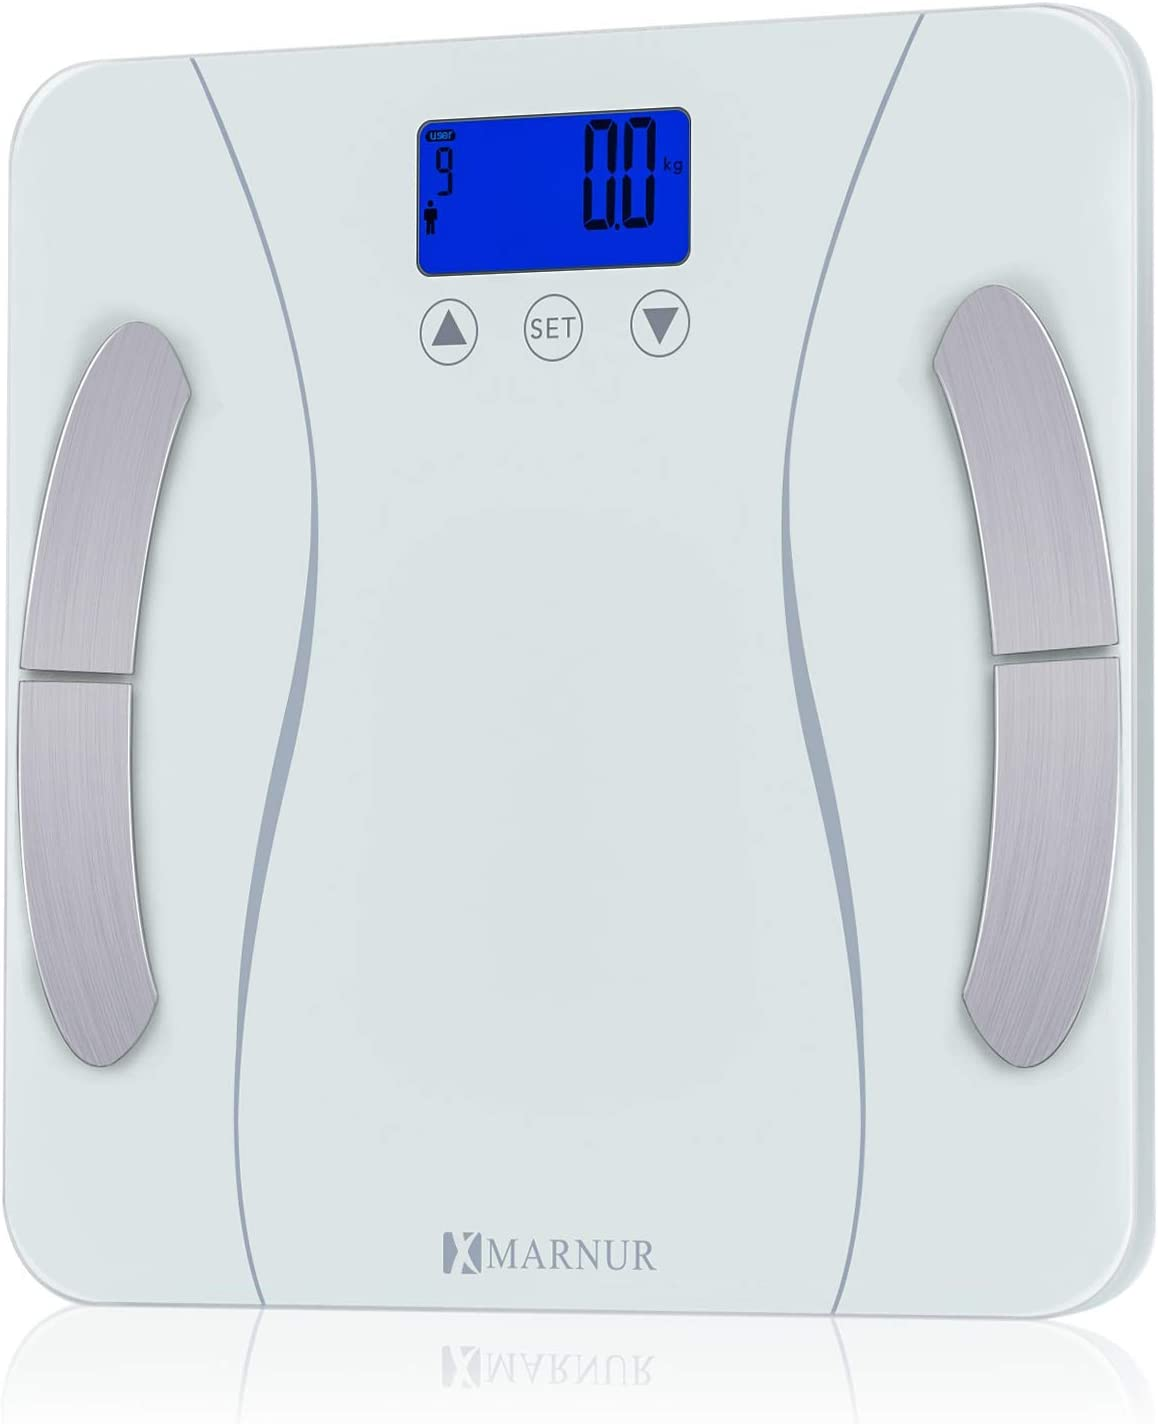 MARNUR Bathroom Weight Scale Body Fat Scale BMI Smart Digital Scale with Body Composition Analyze Monitor 400 pounds Body Tape Measure Included